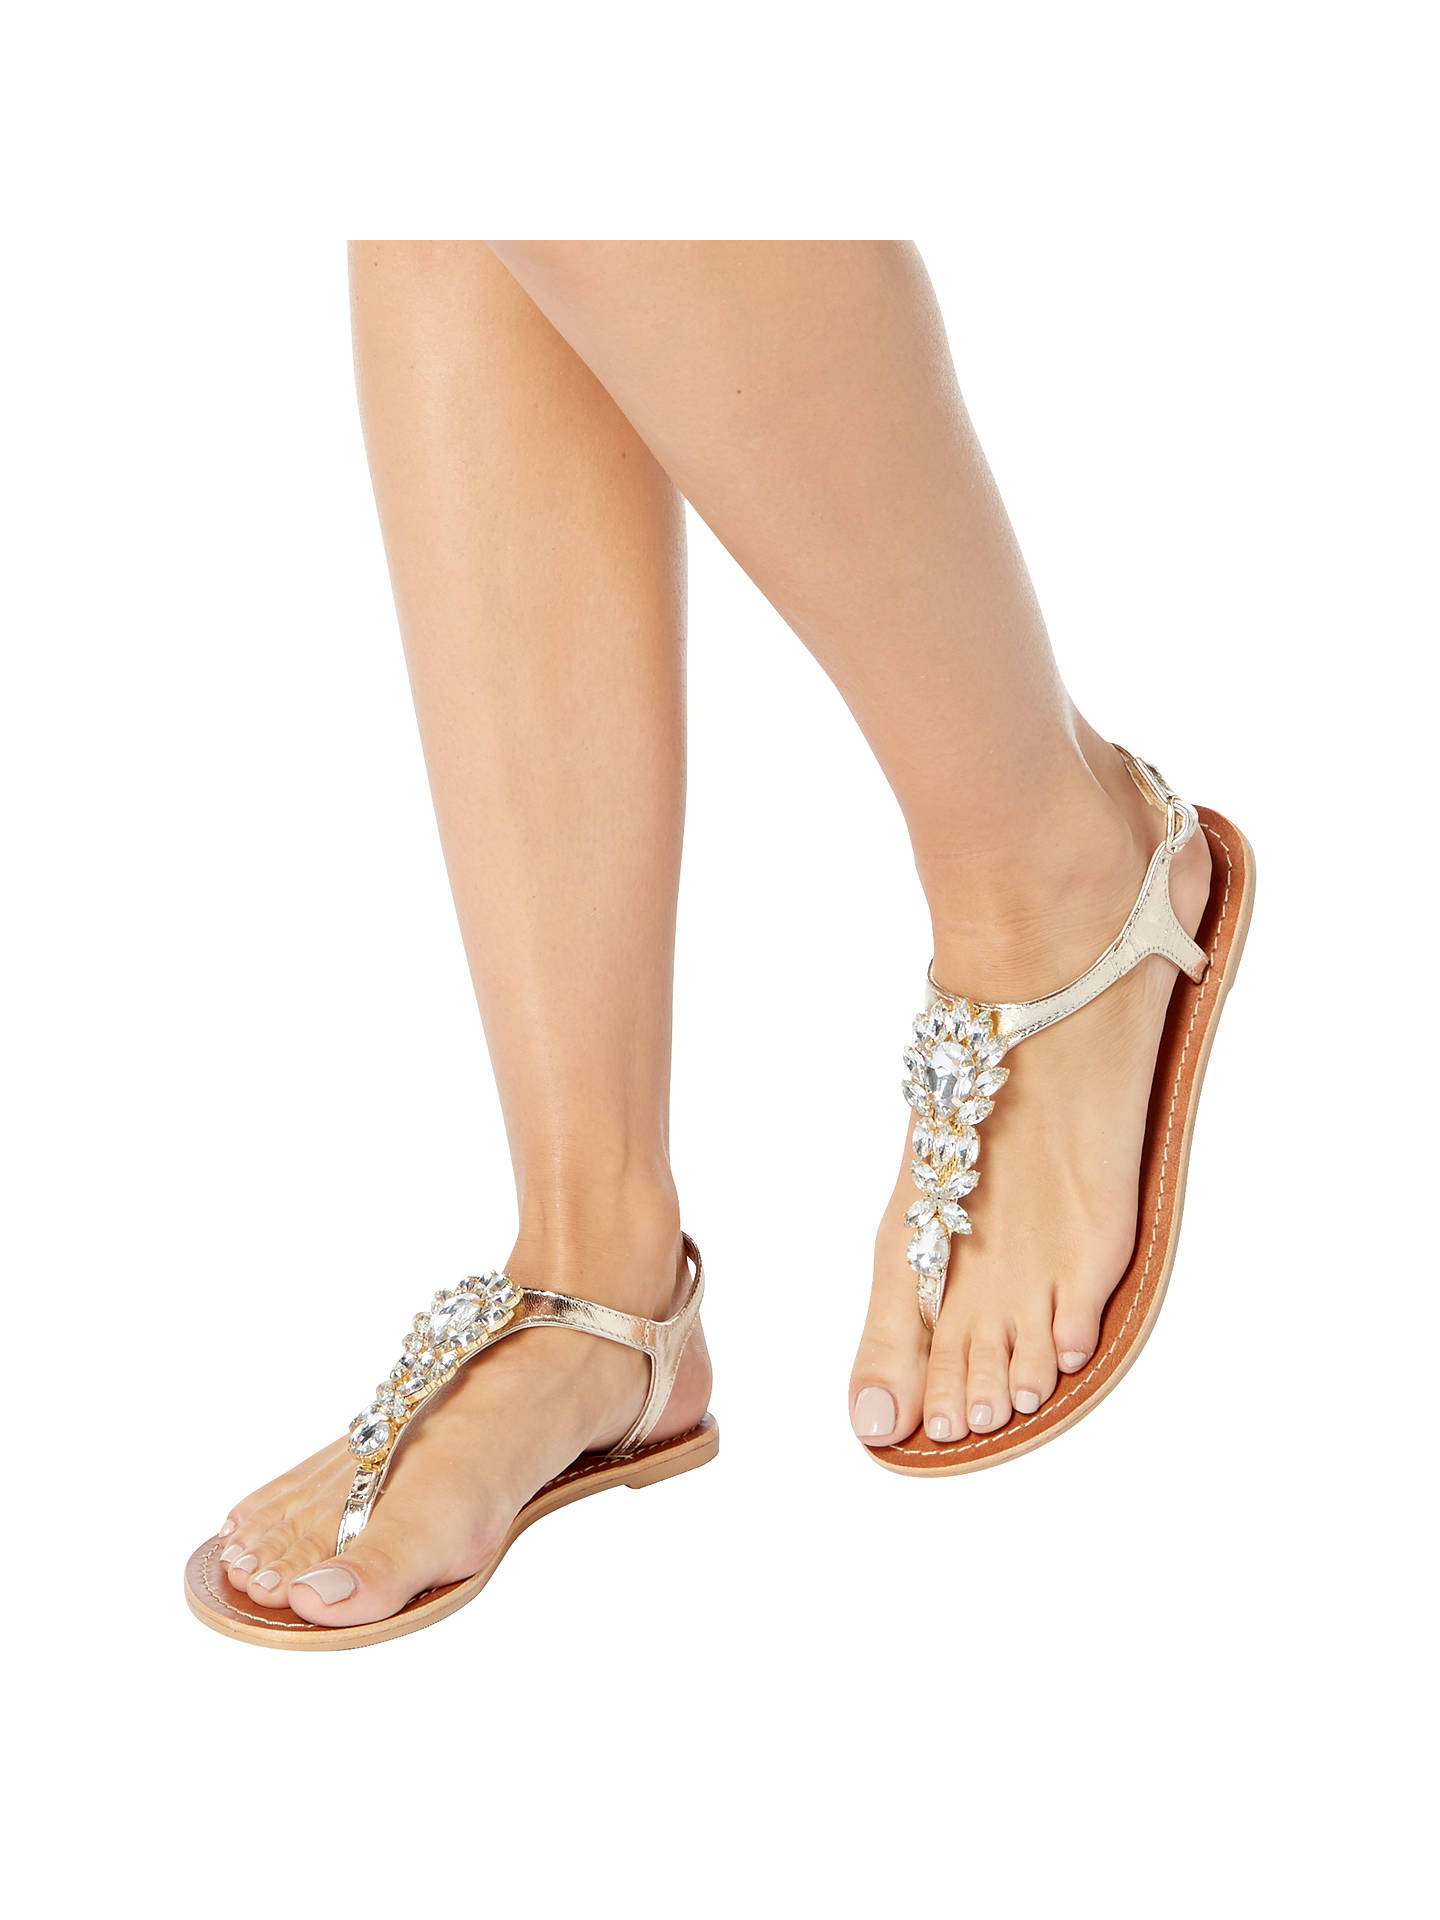 d37b792c7e4c8 ... Buy Steve Madden Jackie Toe Post Embellished Sandals